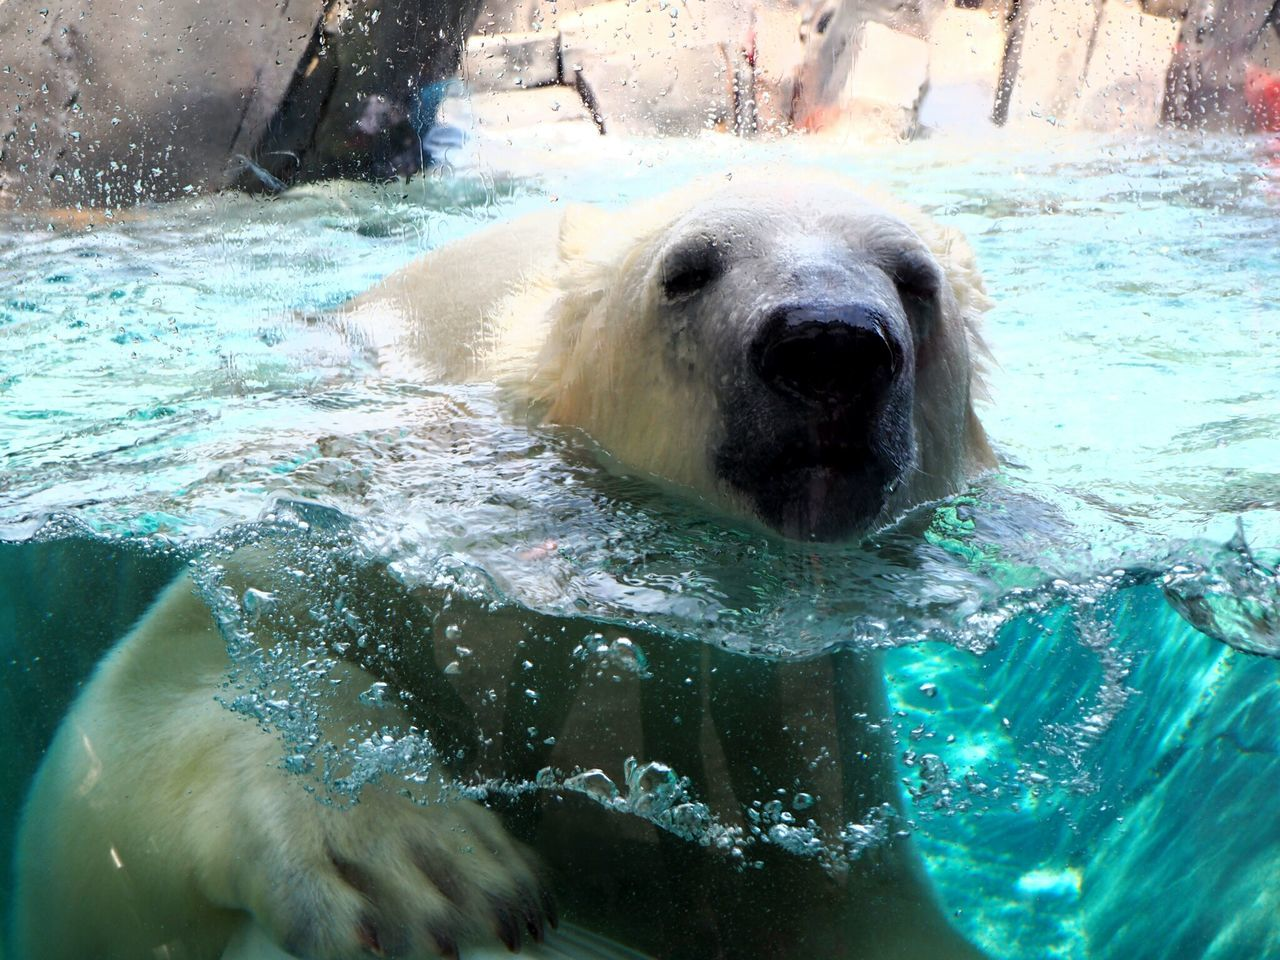 New polar bear at the zoo! Animals Zoo St Louis Missouri Polar Bear Summer Hot Underwater Photography